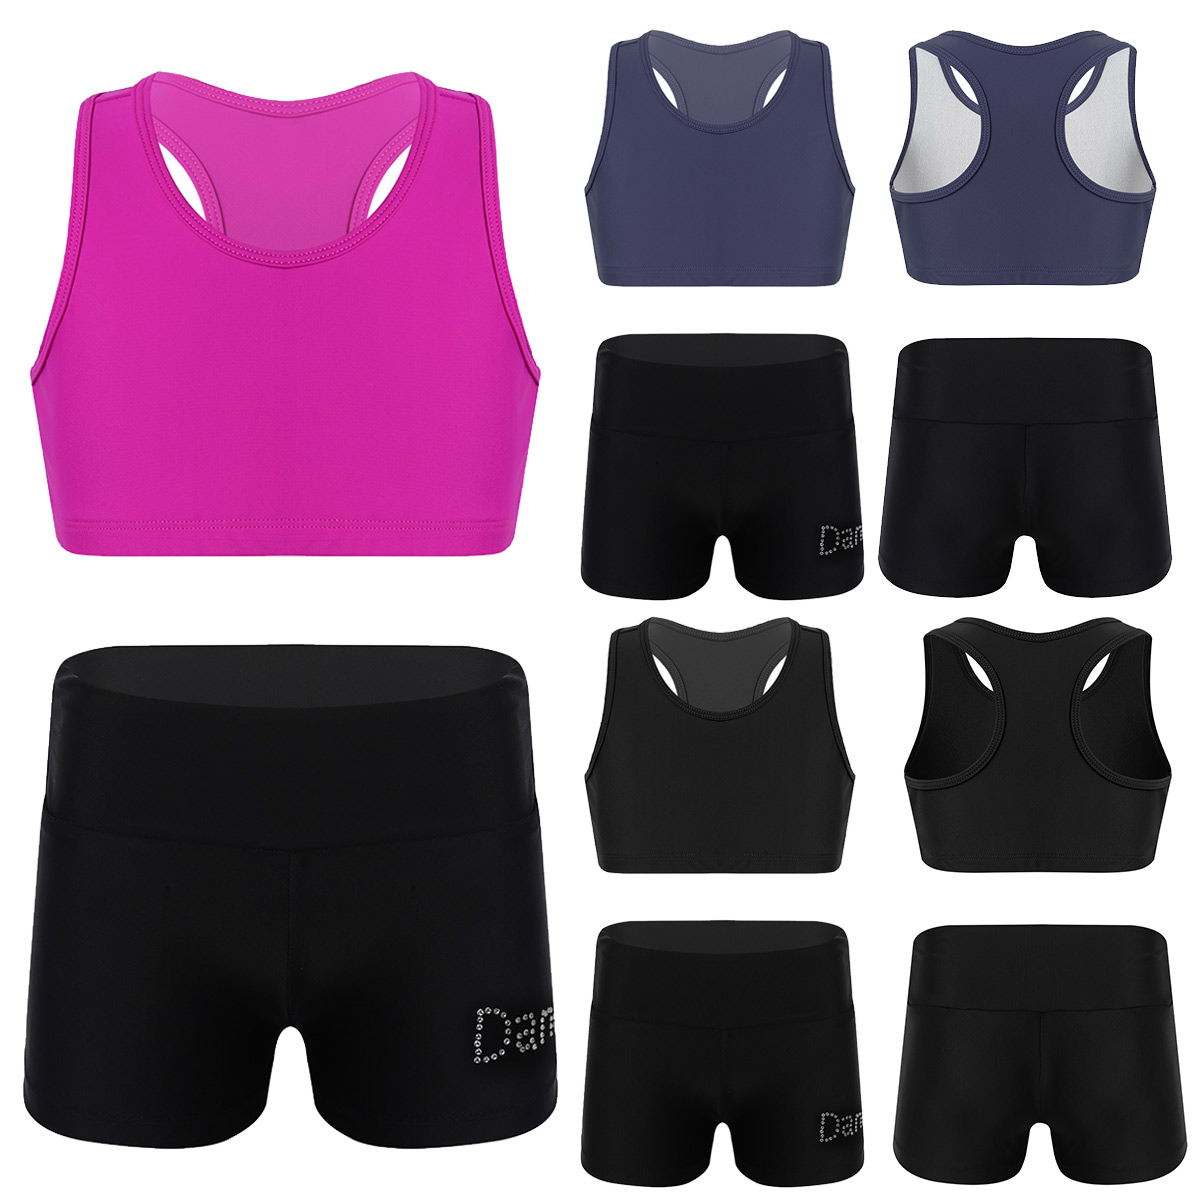 ranrann Girls 2PCS Ballet Dance Outfits Team Uniform Gymnastic Crop Top with Booty Shorts Active Sports Set